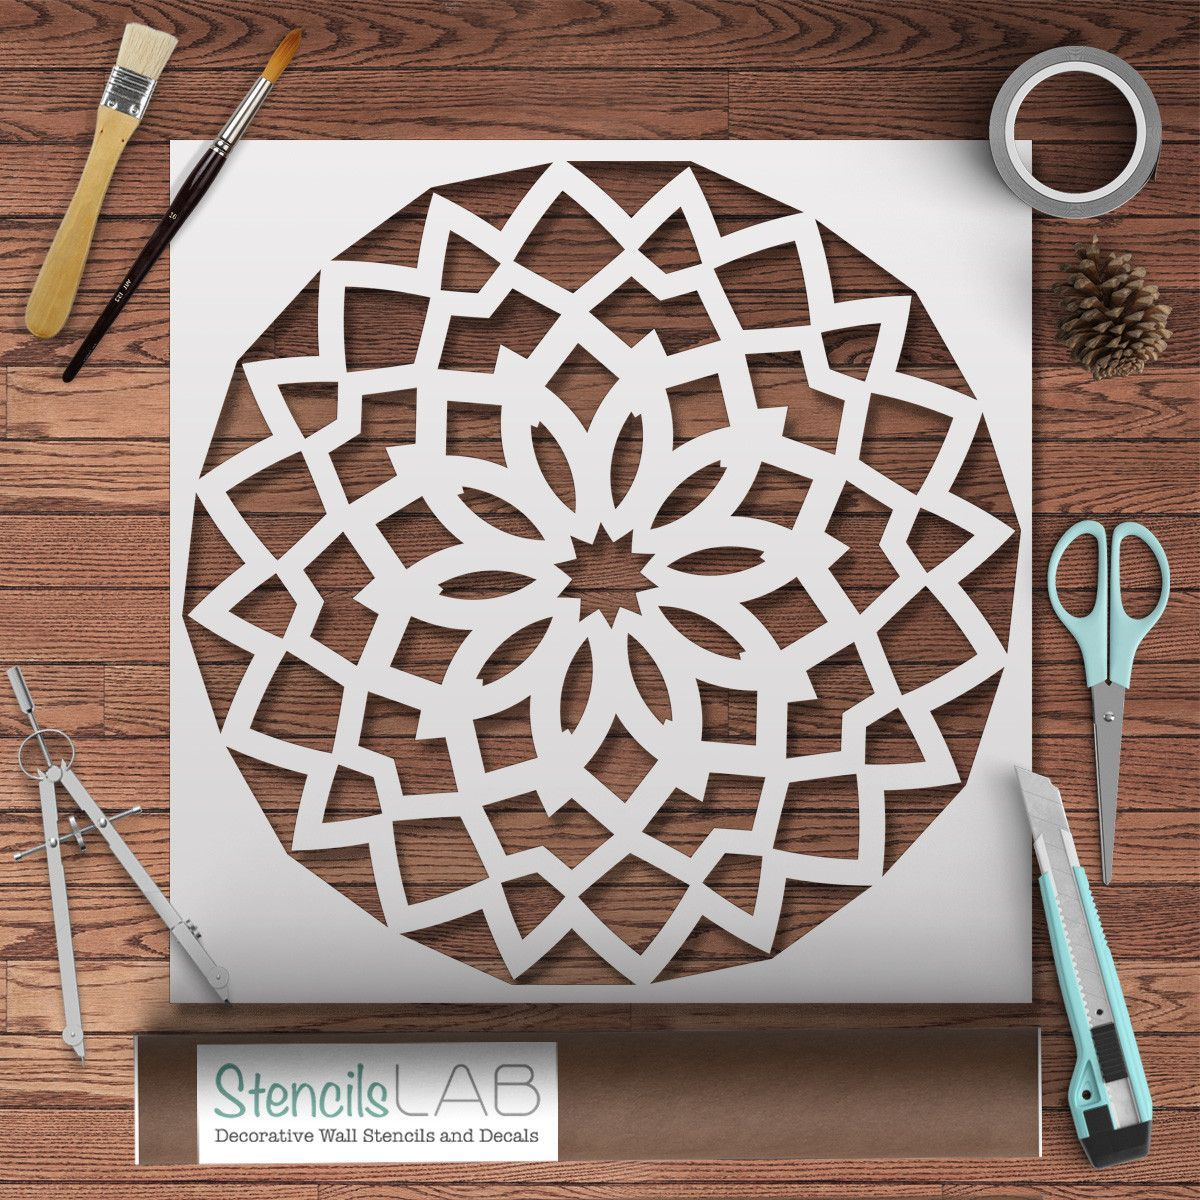 Round geometric mandala style stencil for wall decor original round geometric mandala style stencil for wall decor original design pinting stencil amipublicfo Images